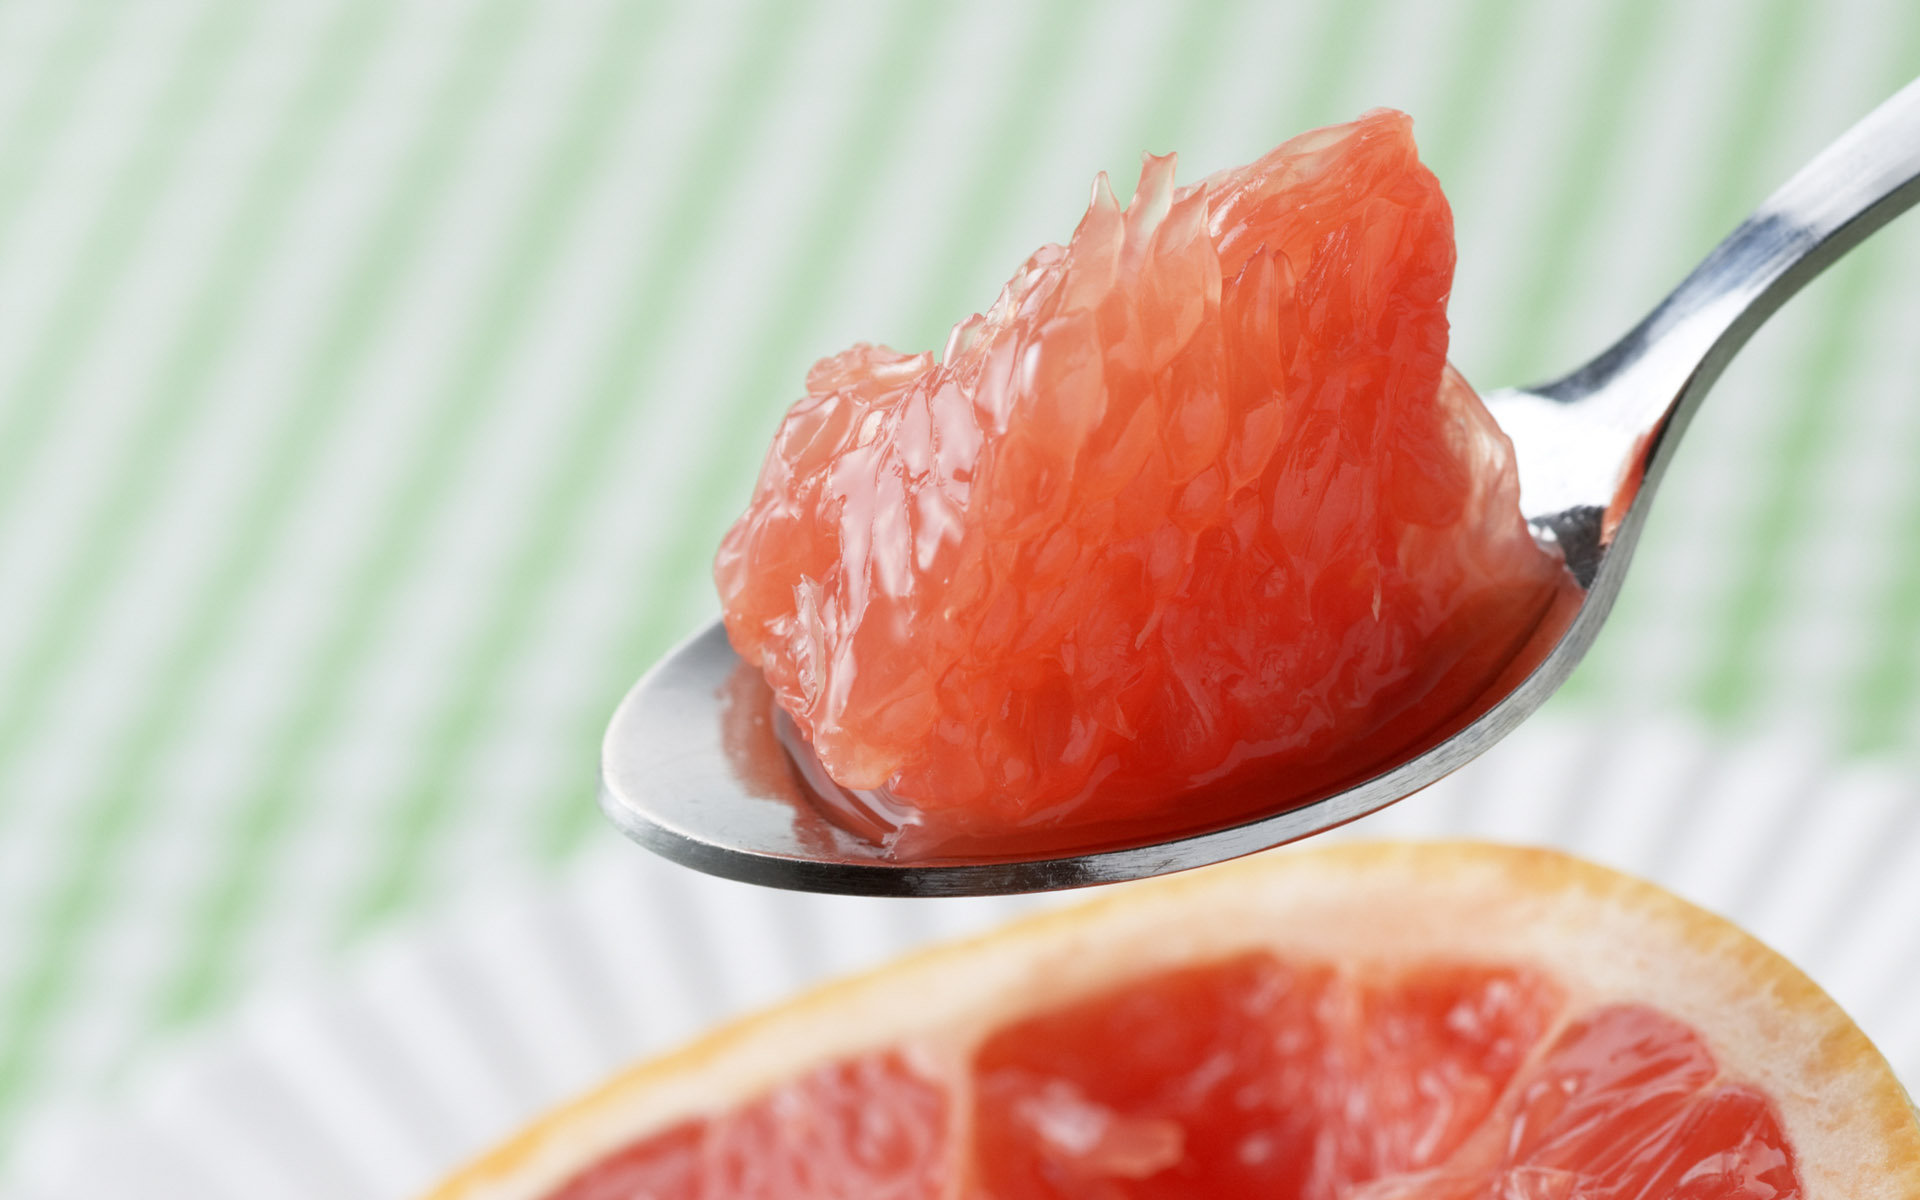 grapefruit-wallpaper_1428461907